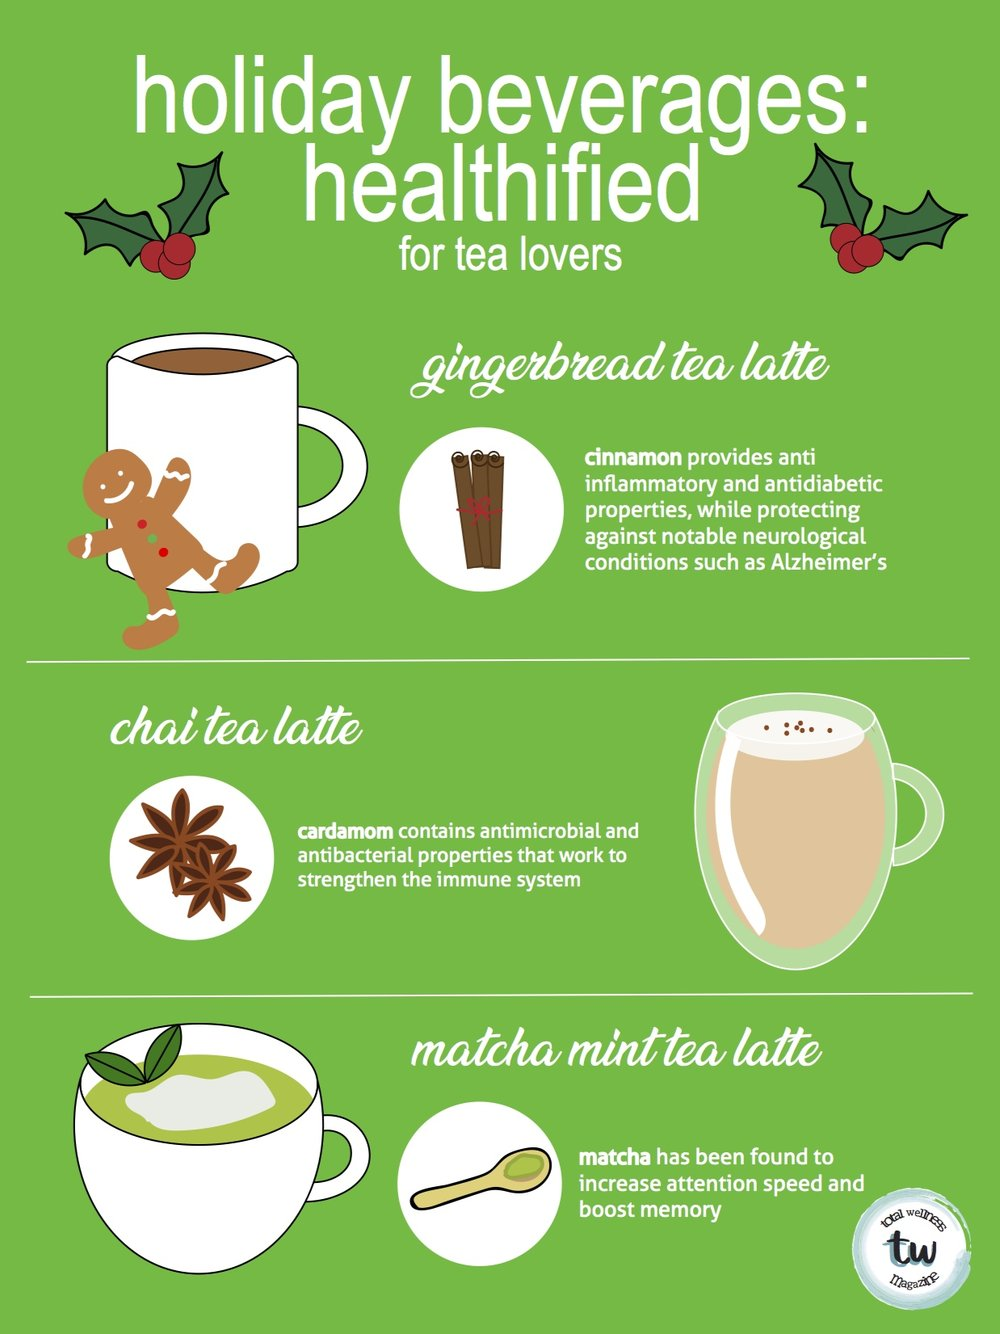 Holiday+Beverages+Healthified+%28FOR+TEA+LOVERS%29+-+TW+Magazine.jpg